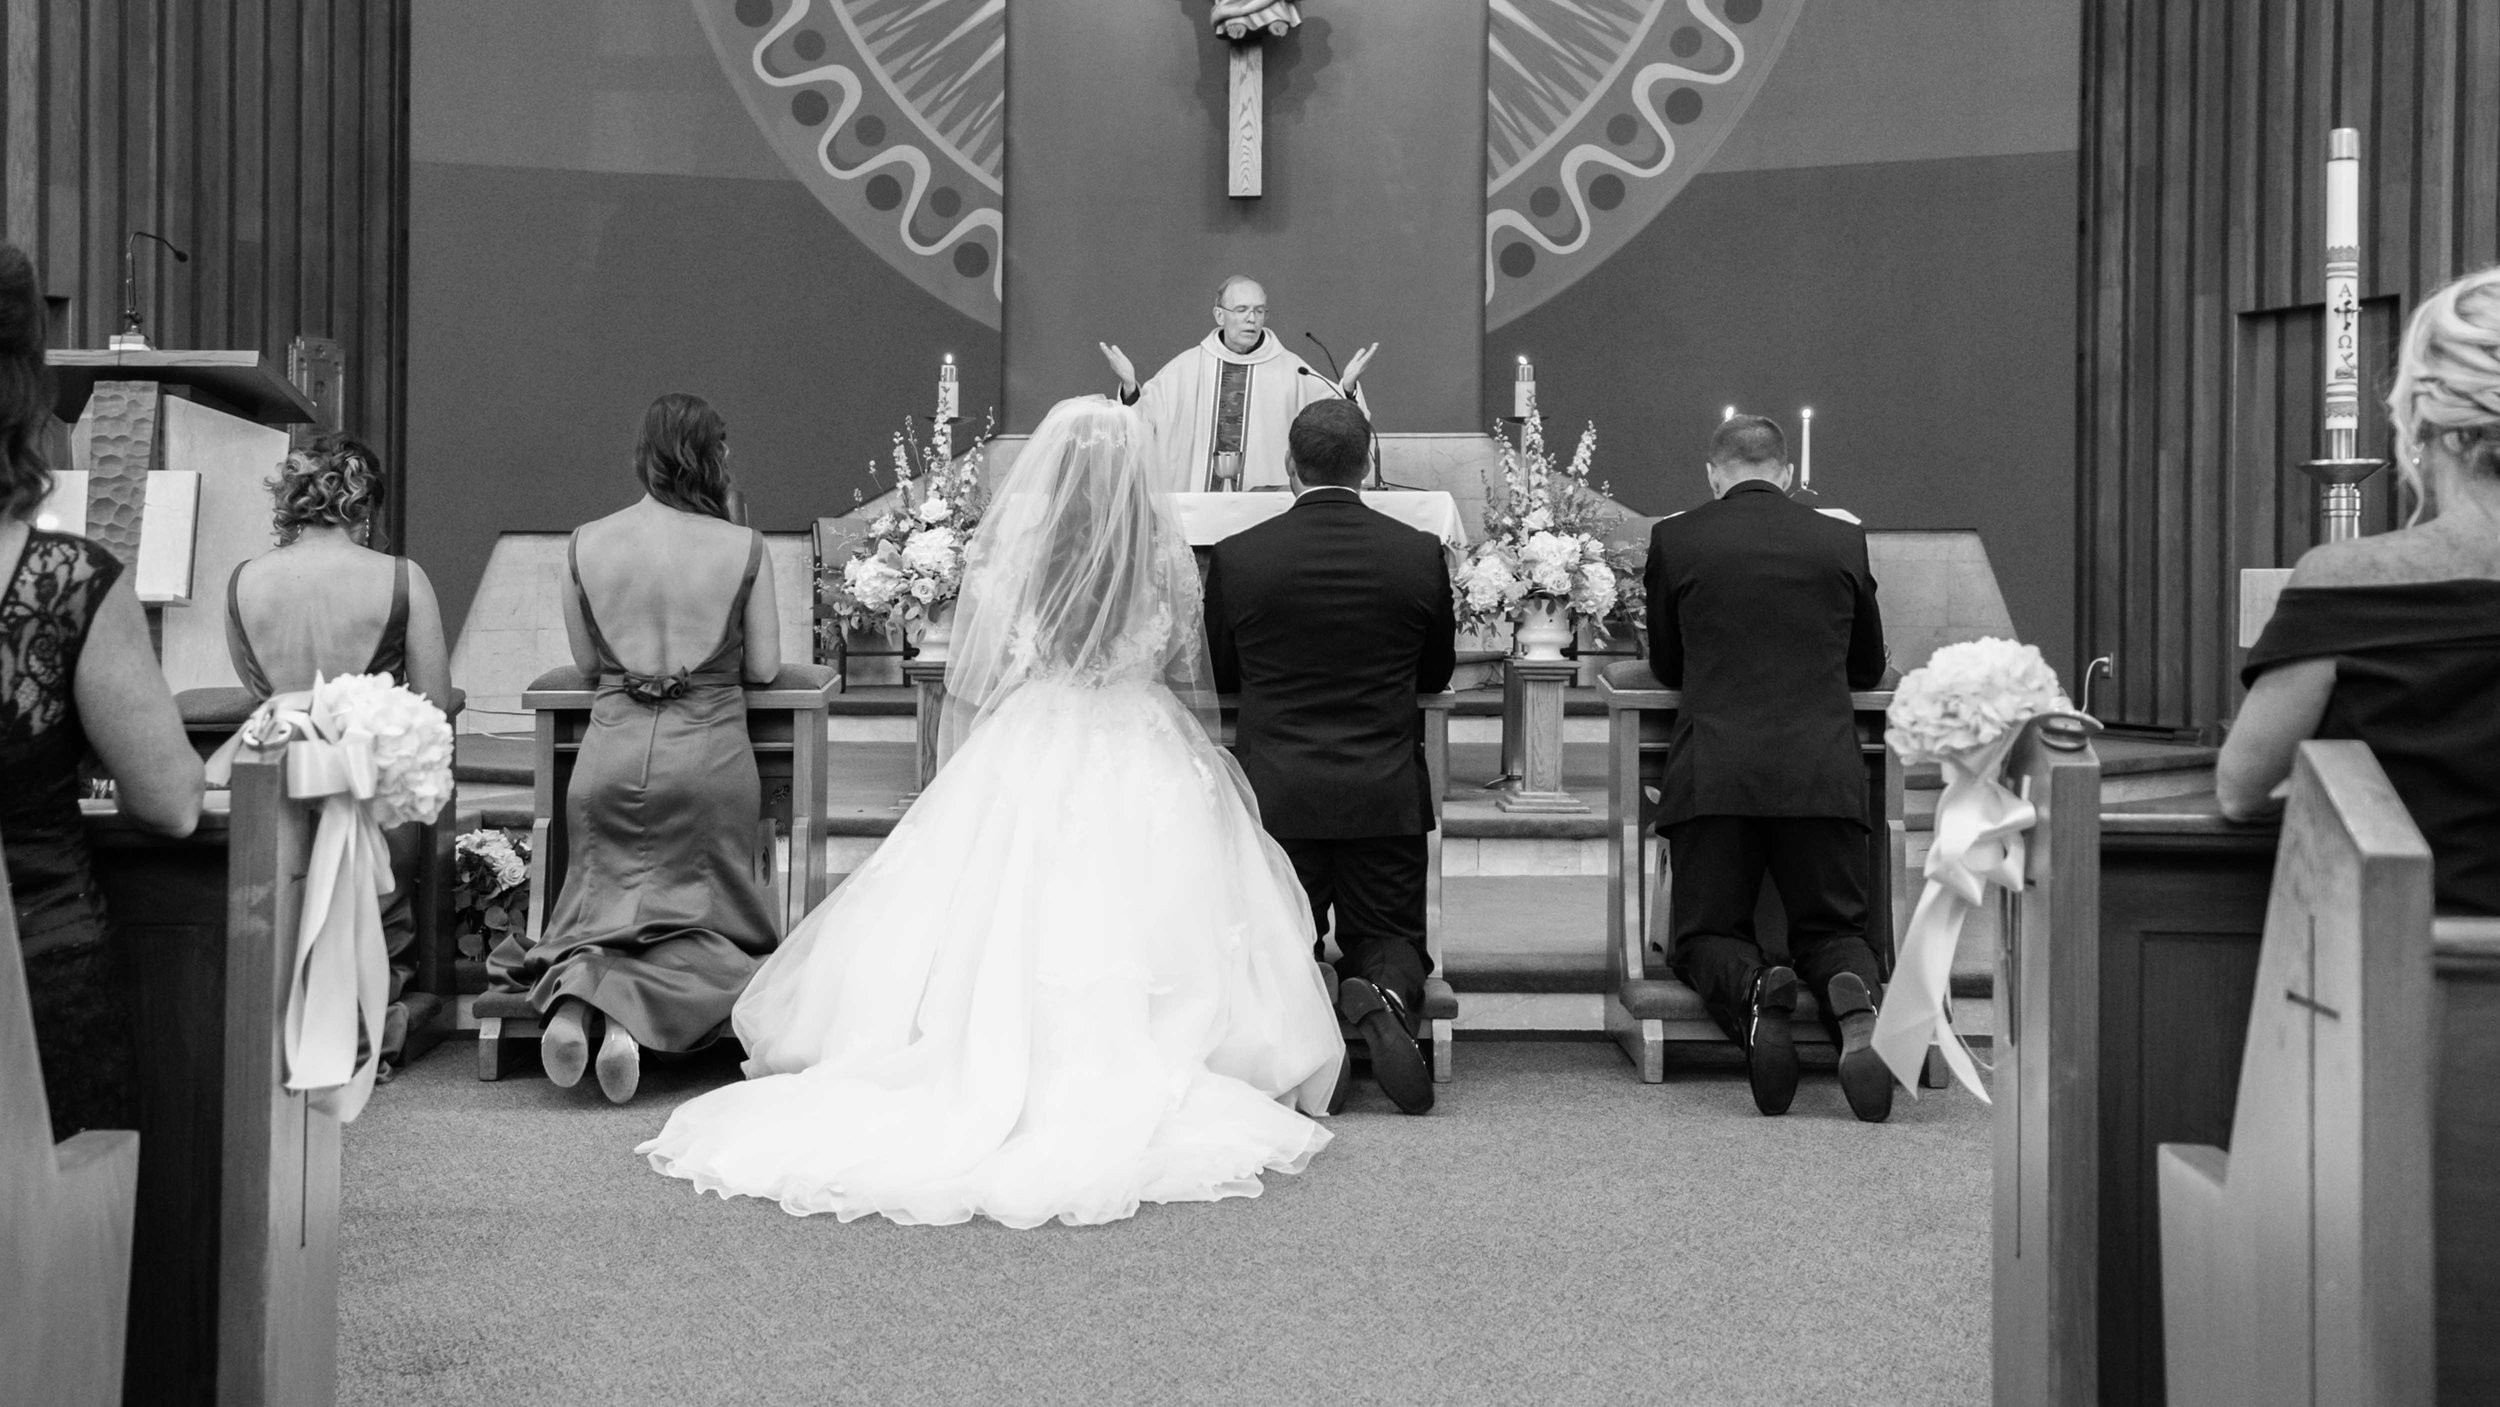 Wedding-Ceremony-Our-Lady-of-Peace-Church--9.jpg